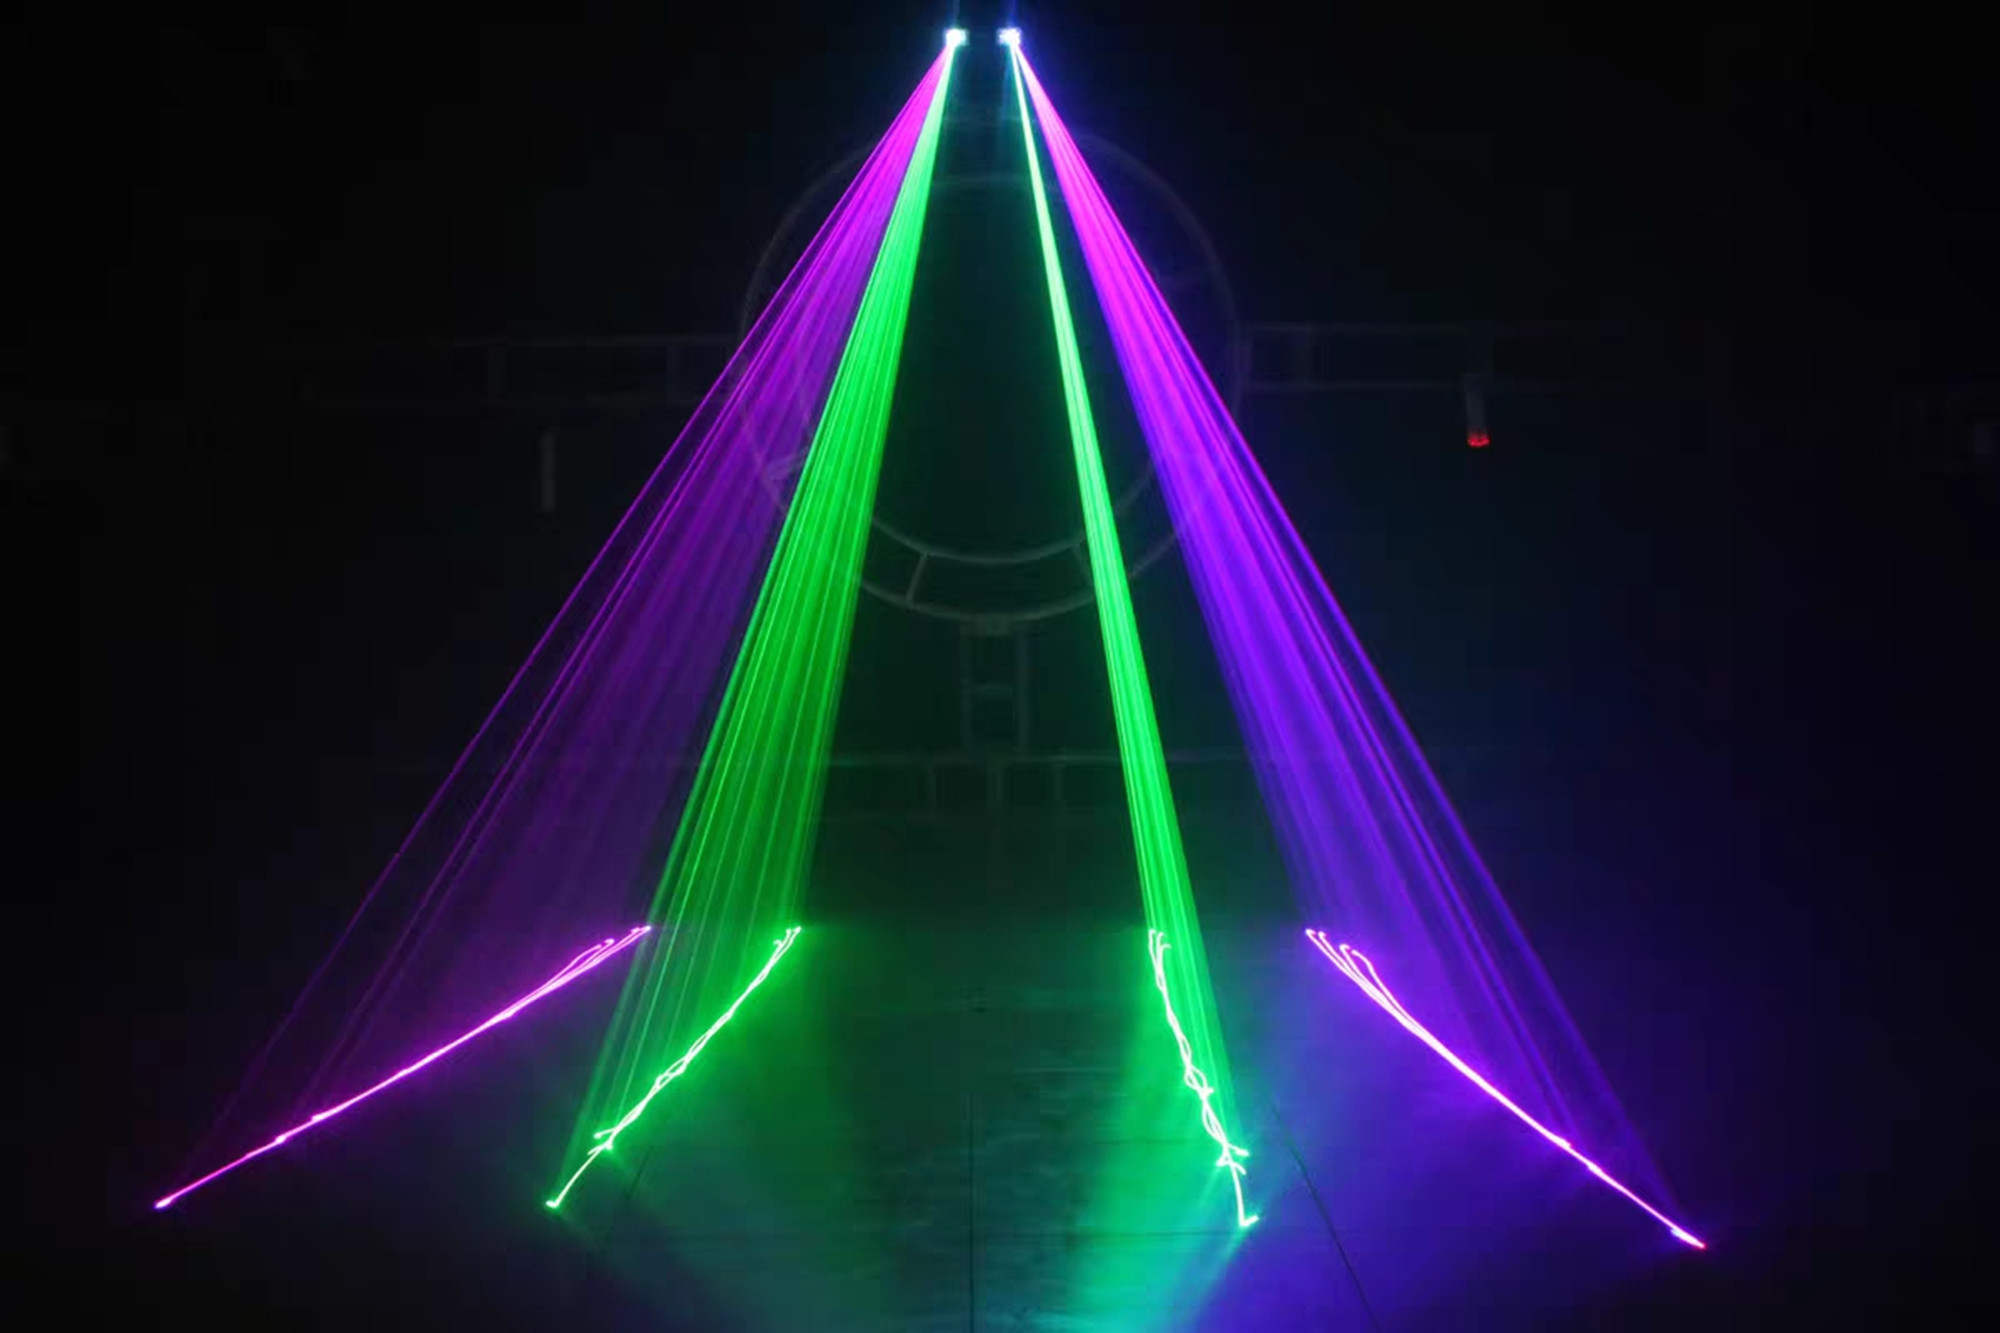 H126a9ba894224213ba630a5ac7dc872df - Hot sales 2 Lens Red Green Blue RGB Beam Laser Light DMX 512 Professional DJ Party Show Club Holiday Home Bar Stage Lighting